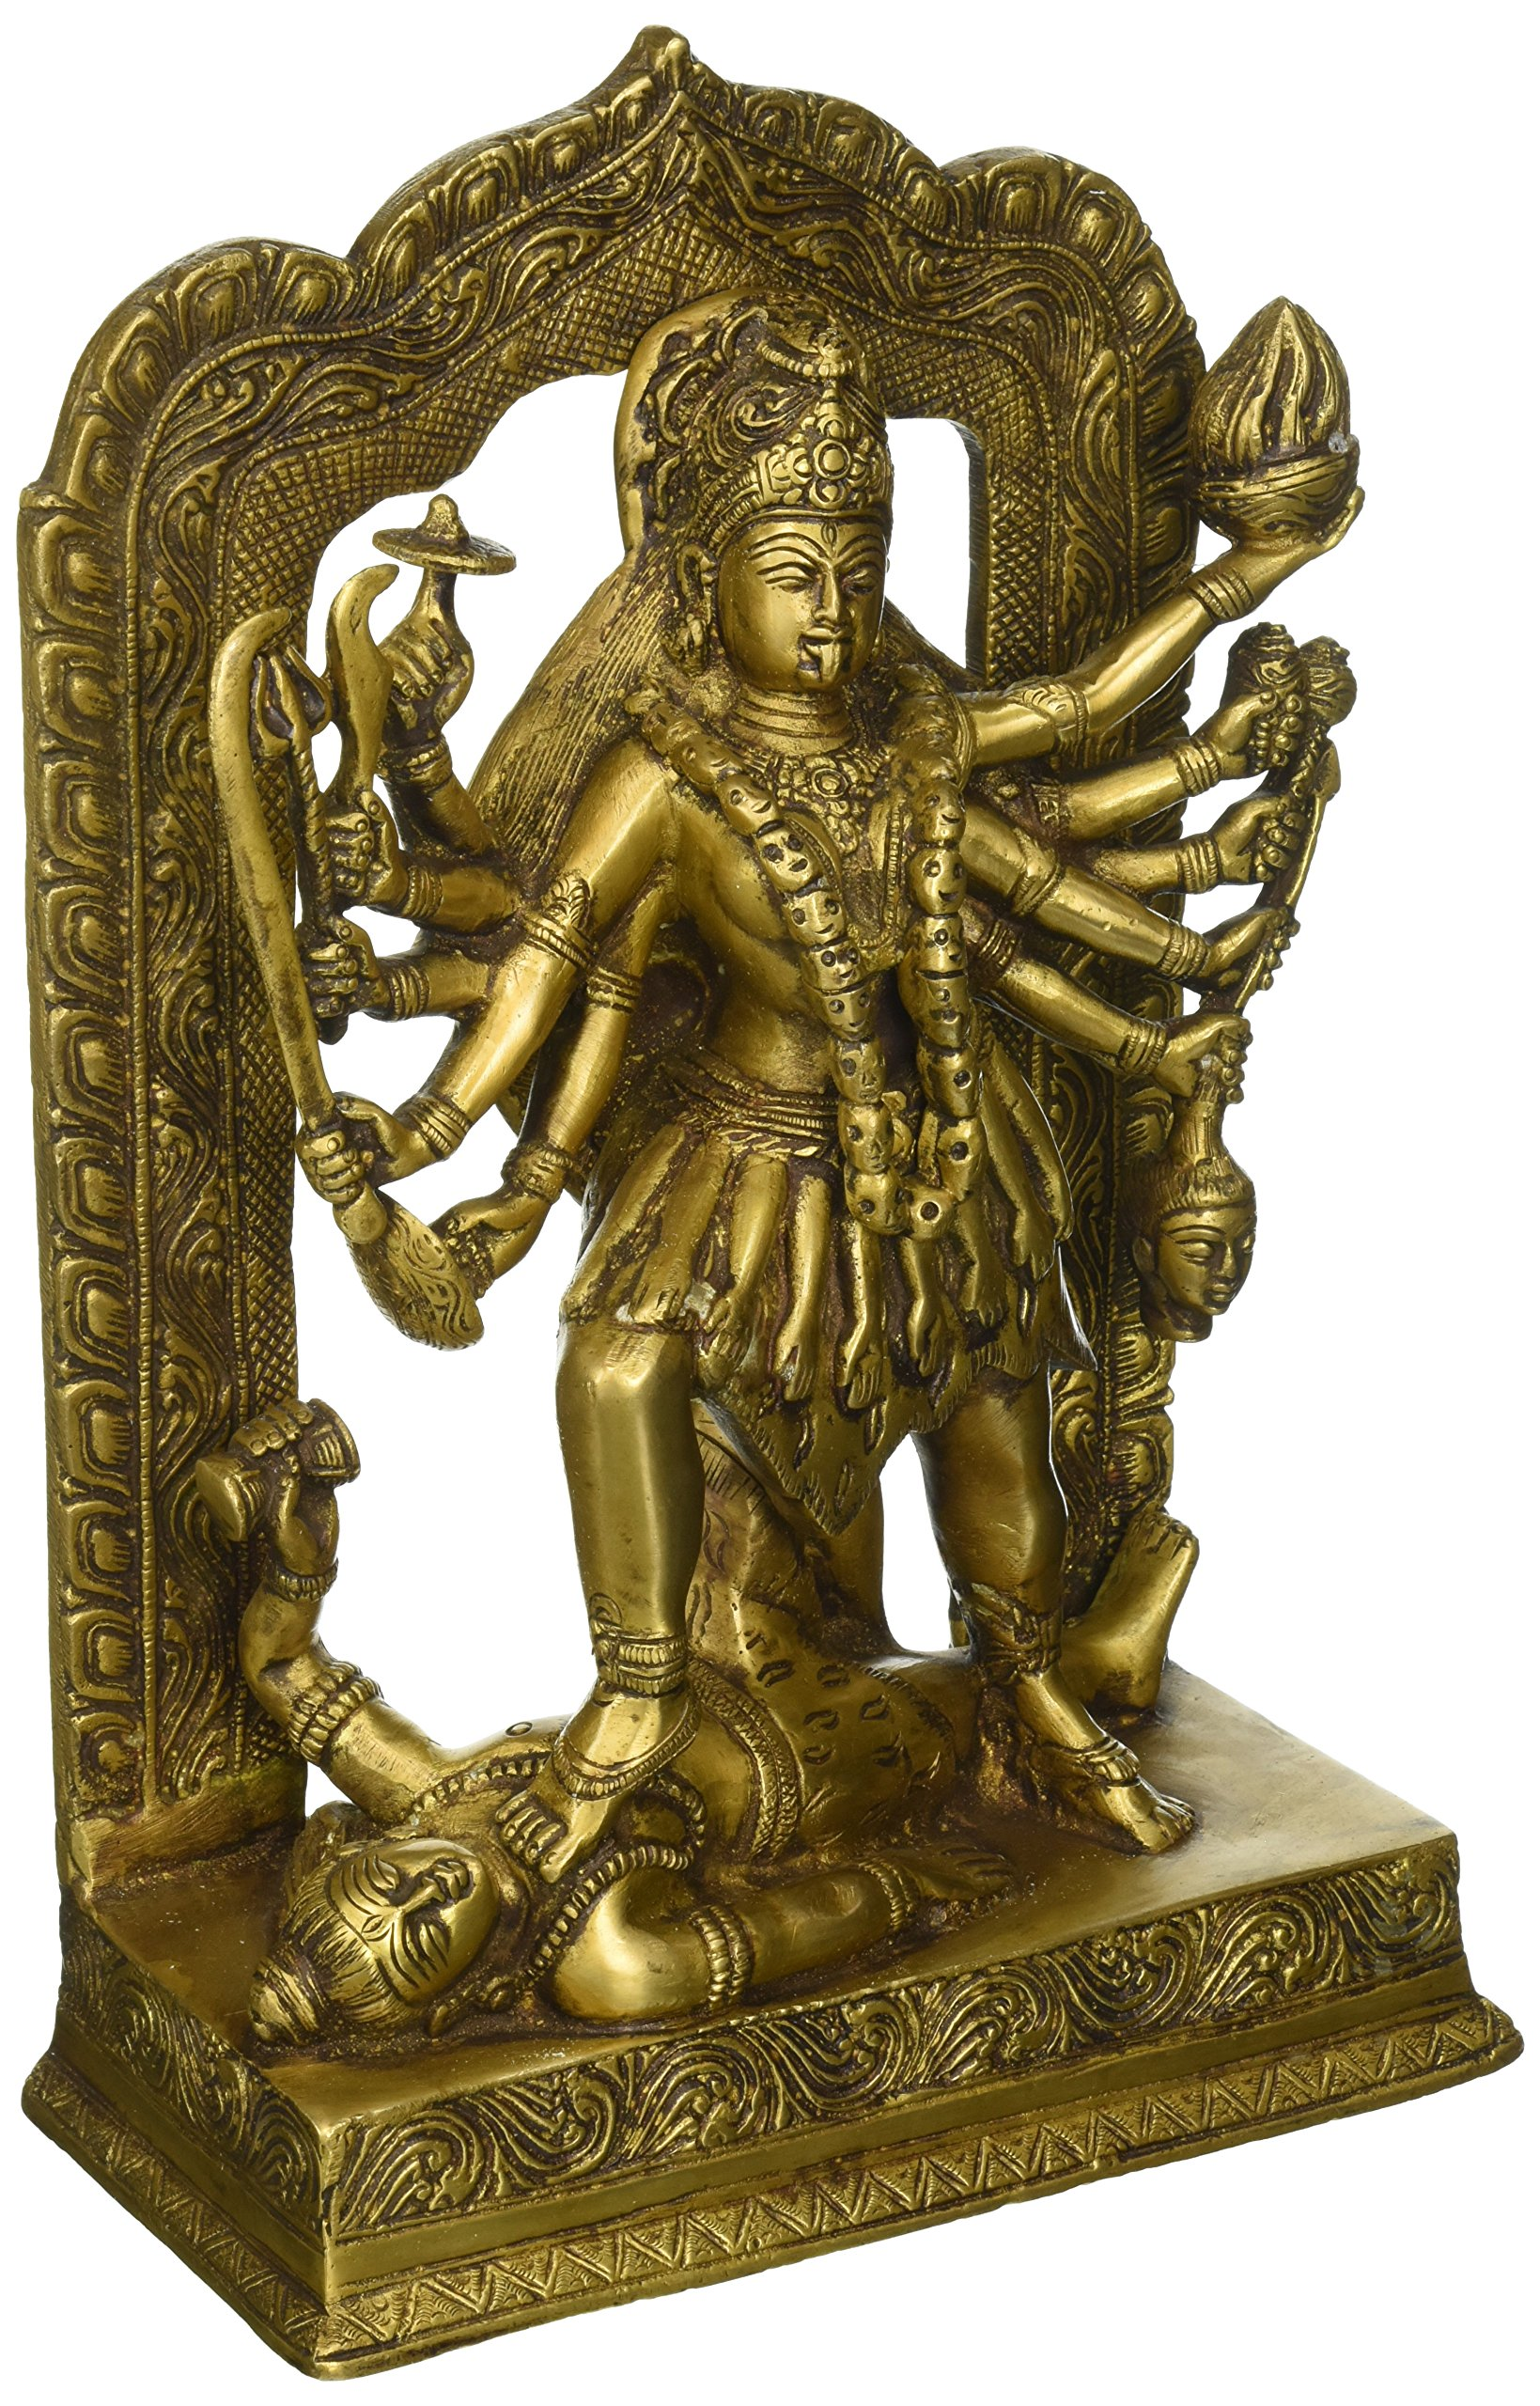 AONE INDIA Goddess Kali Brass Statue 4178 (11.50''H X 7.75''W X 3.75''D) + Cash Envelope (Pack Of 10)